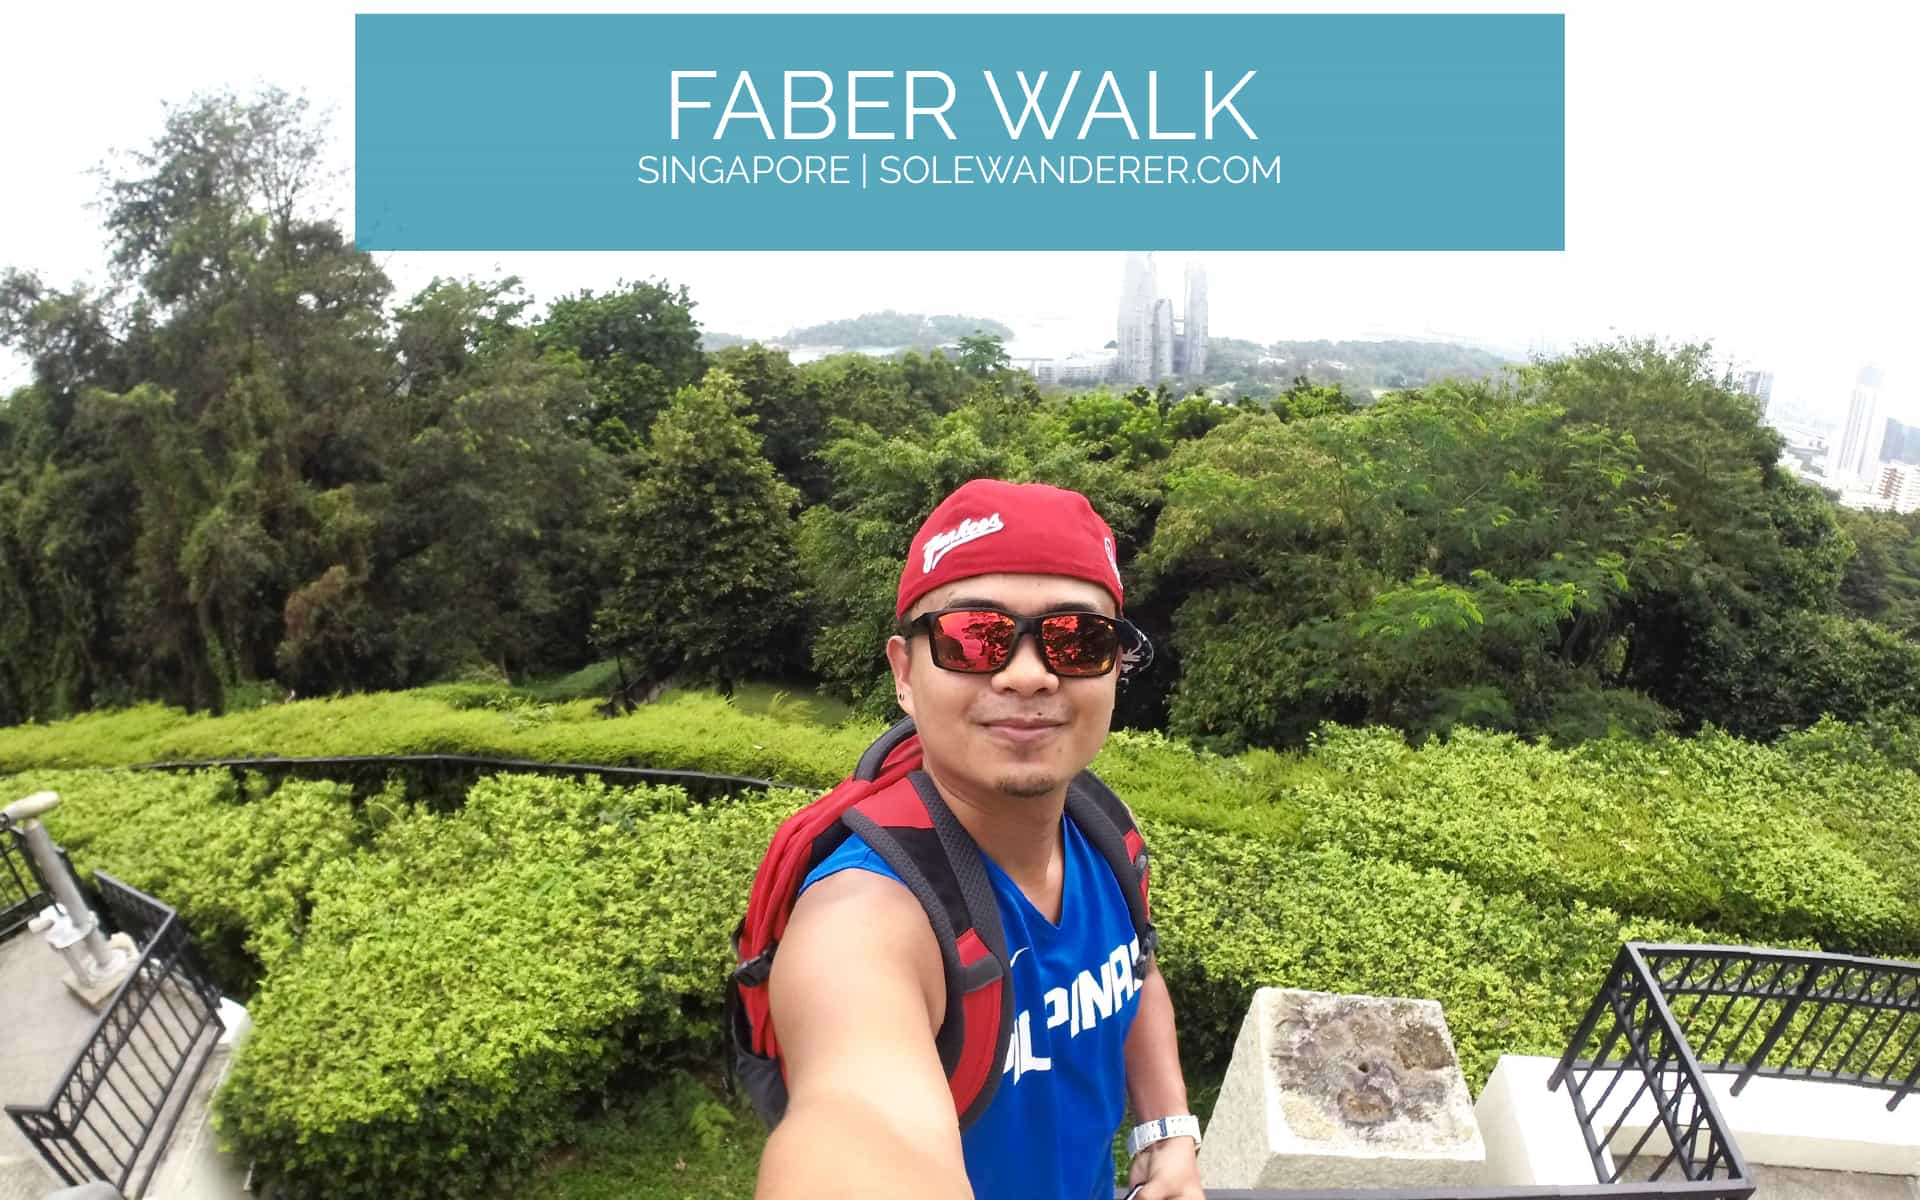 Faber Walk Singapore -The Sole Wanderer.